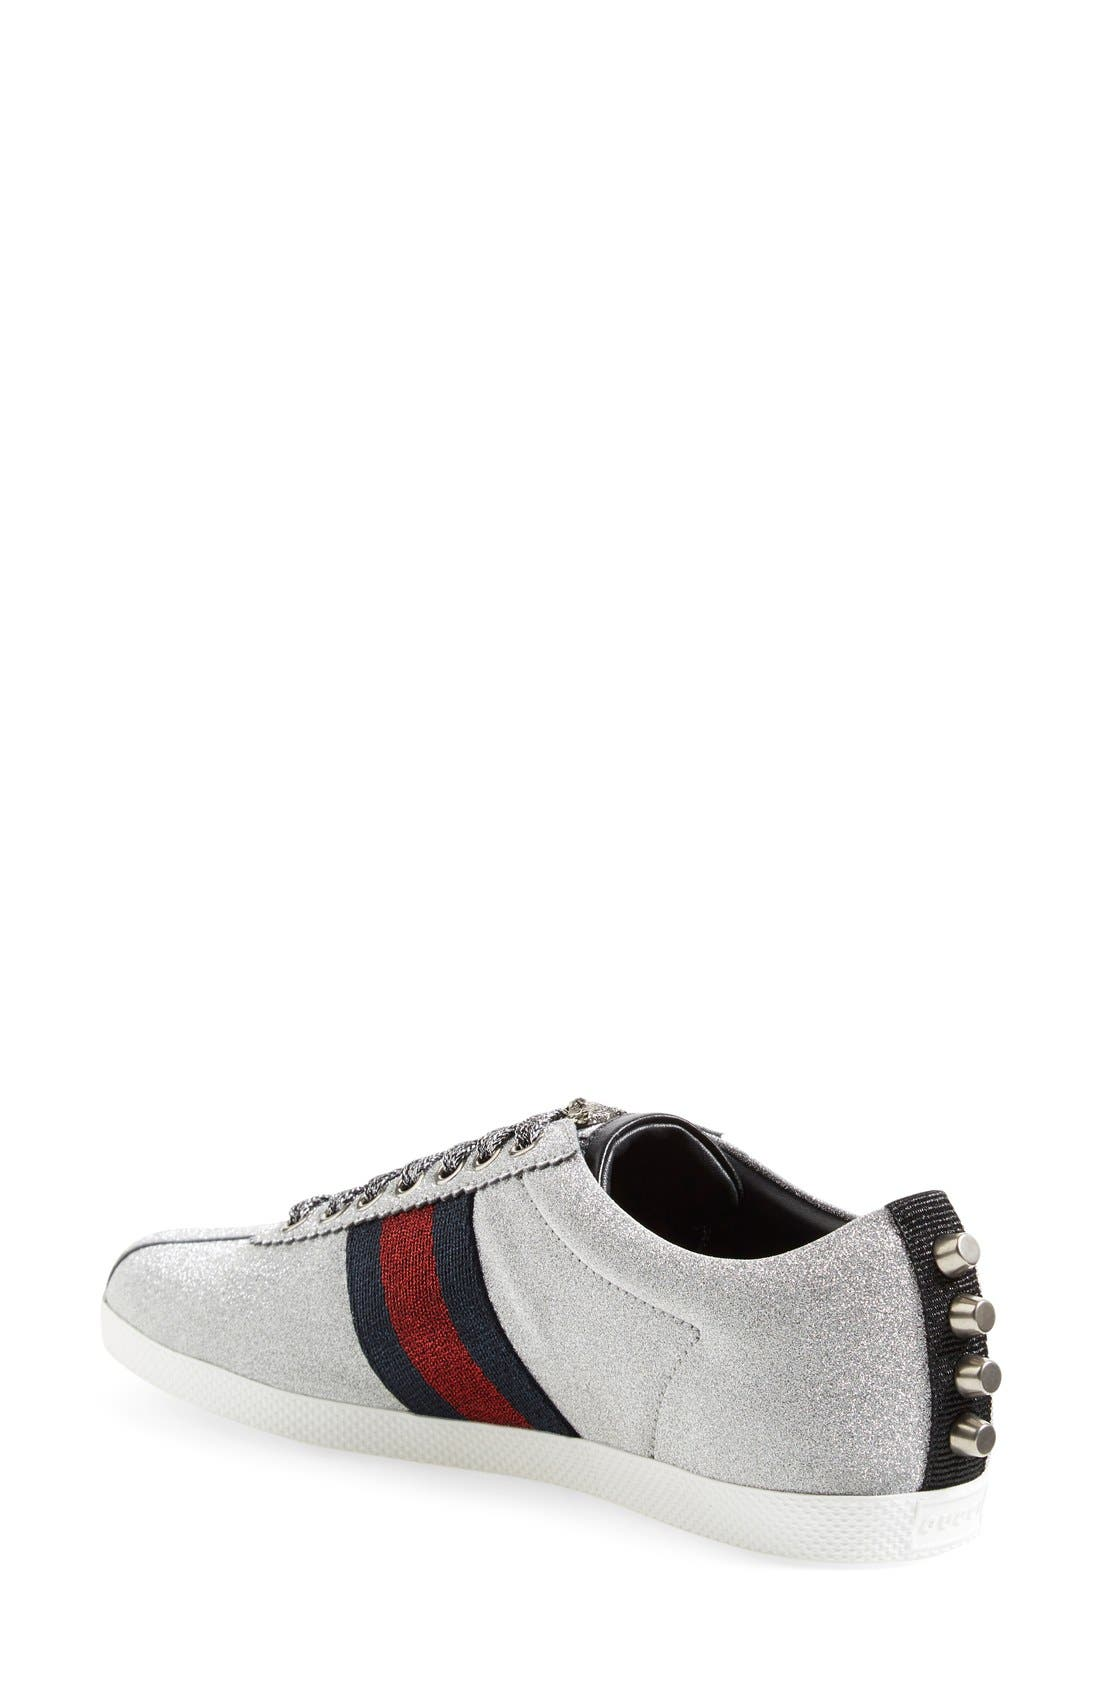 Alternate Image 2  - Gucci Lace-Up Sneaker (Women)